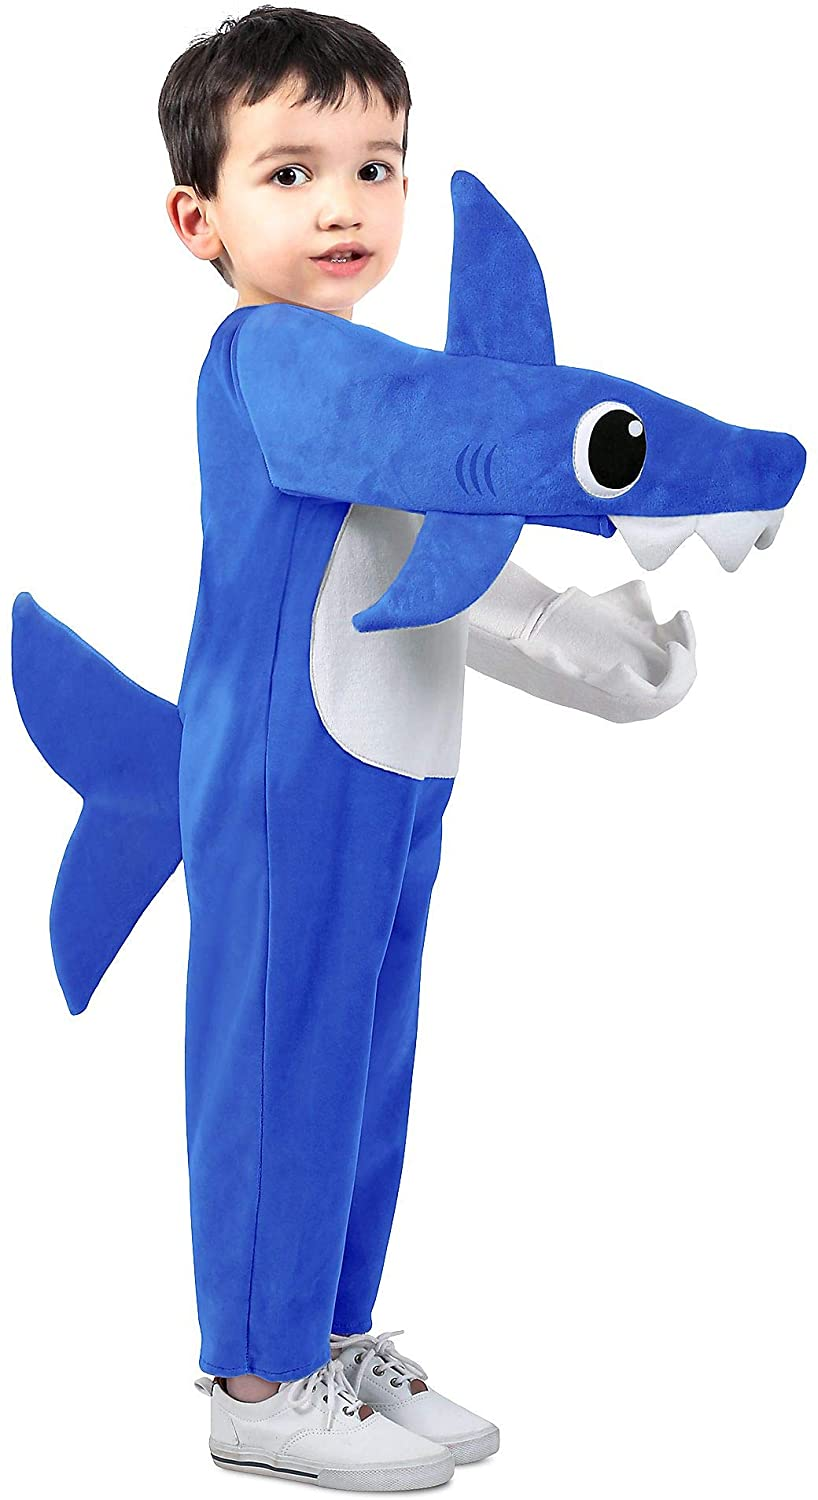 The Diamond Collection Daddy Shark Costume for Toddlers, Extra-Small, Includes a Jumpsuit, Fins, and a Tail